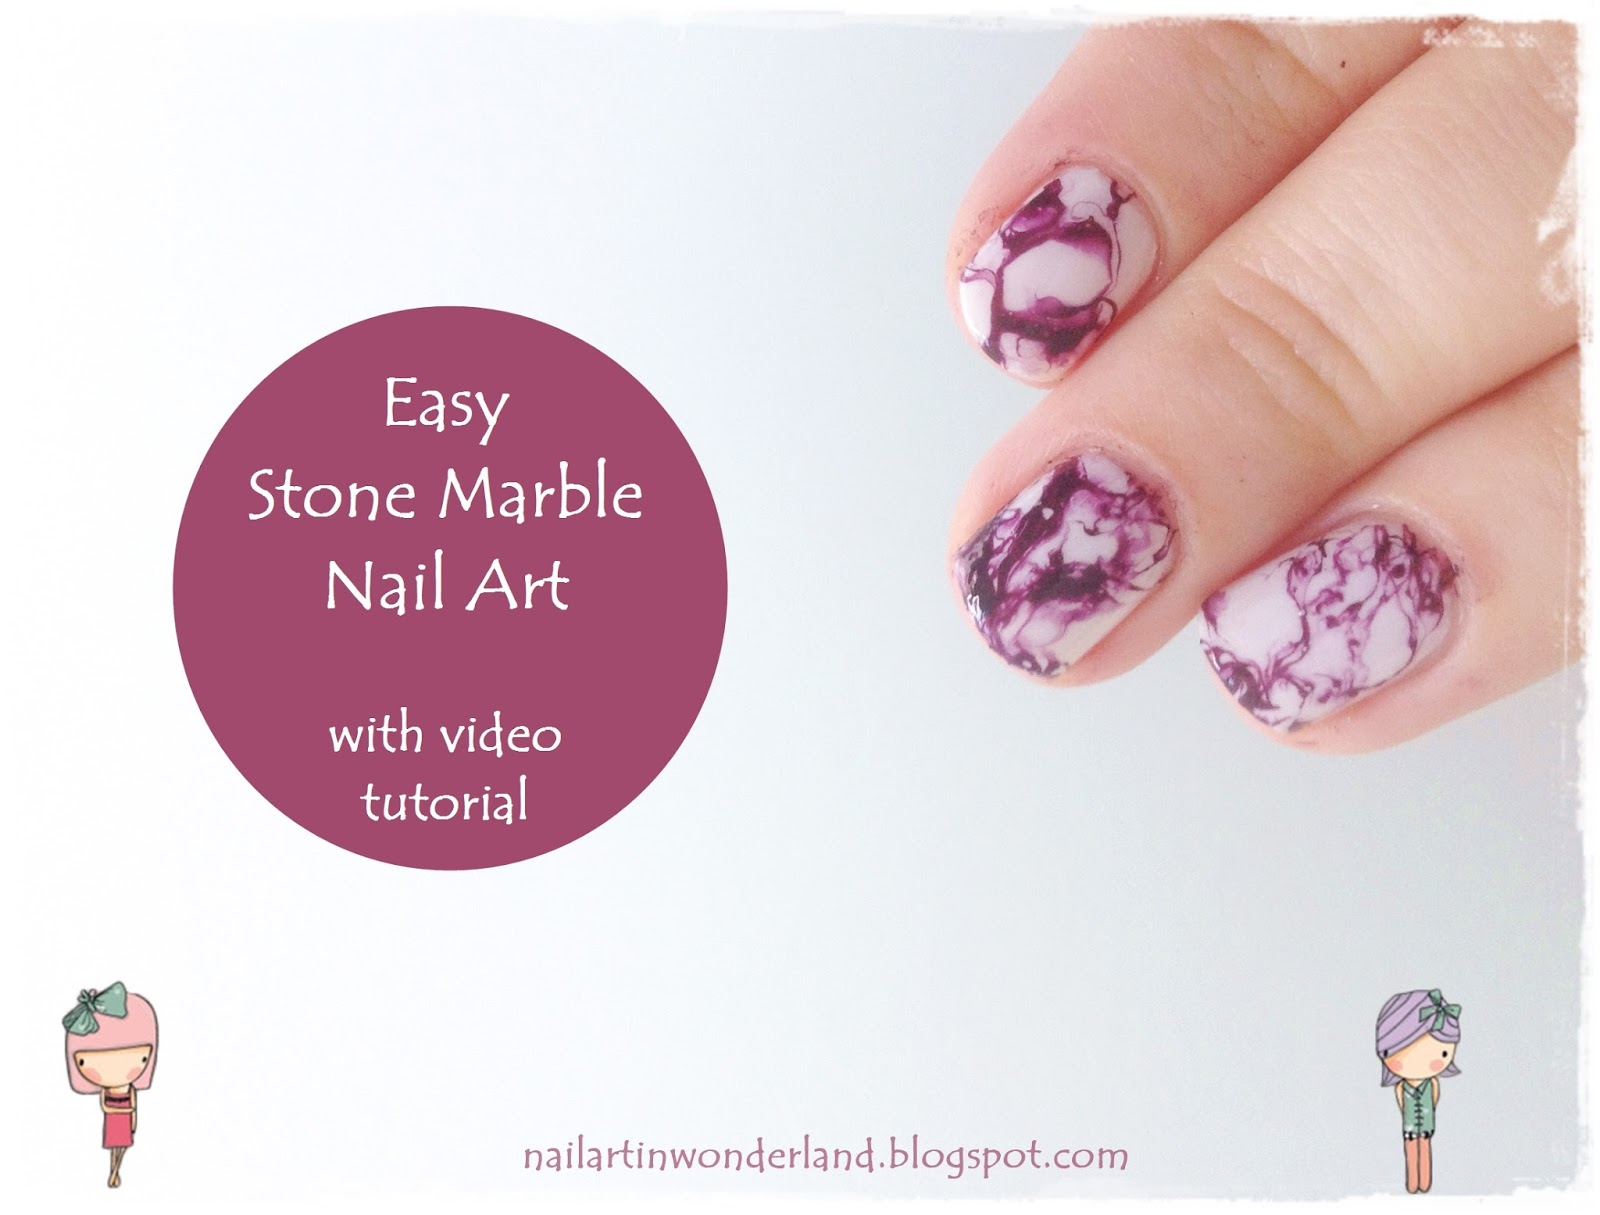 Tırnaklarda Kolay Mermer Deseni / Easy Stone Marble Nail Art Video Tutorial